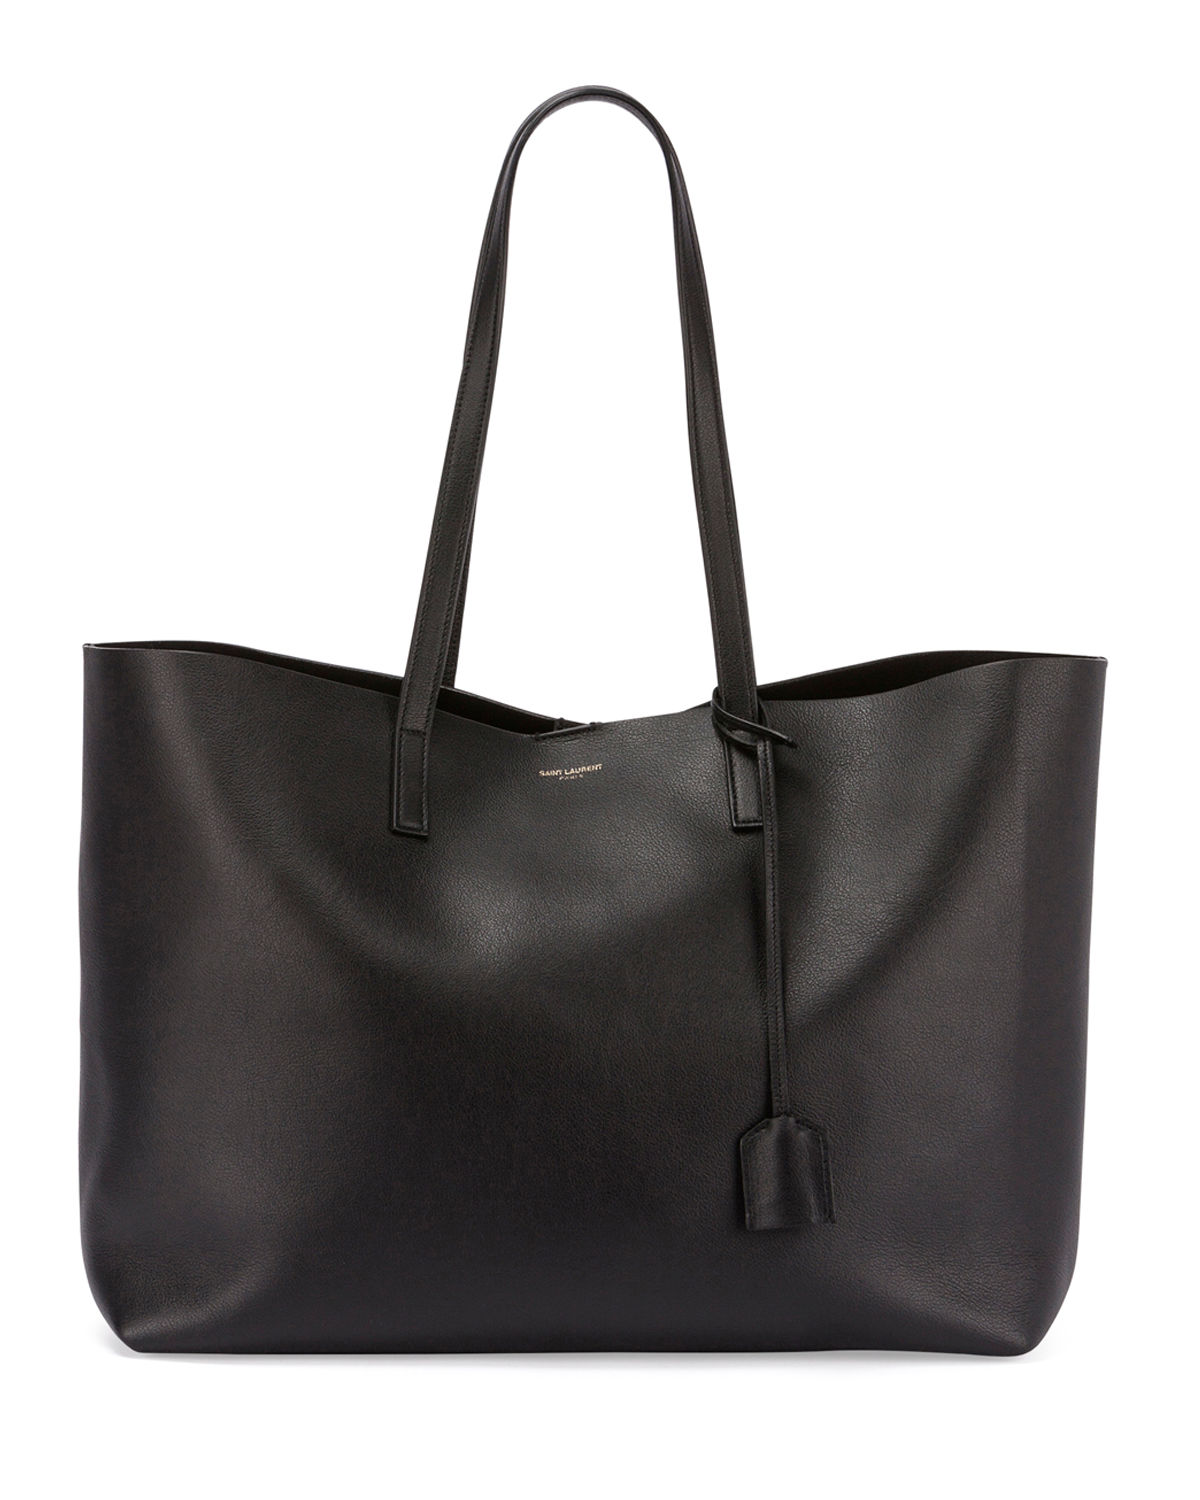 0d2c72300d Saint Laurent East West Shopping Tote Bag